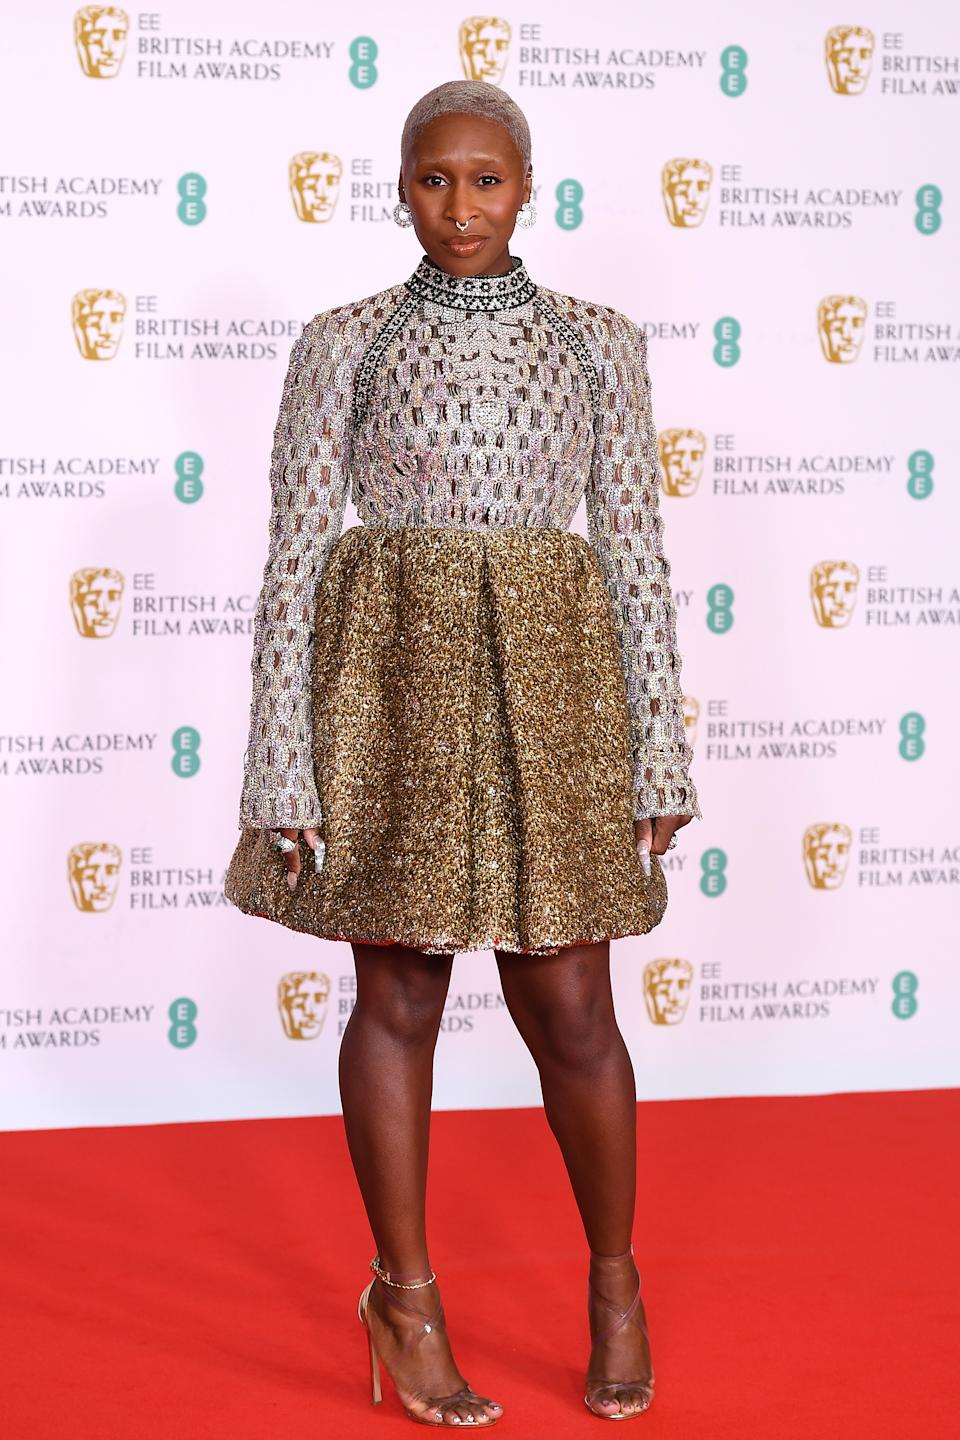 LONDON, ENGLAND - APRIL 11: Awards Presenter Cynthia Erivo attends the EE British Academy Film Awards 2021 at the Royal Albert Hall on April 11, 2021 in London, England. (Photo by Jeff Spicer/Getty Images)